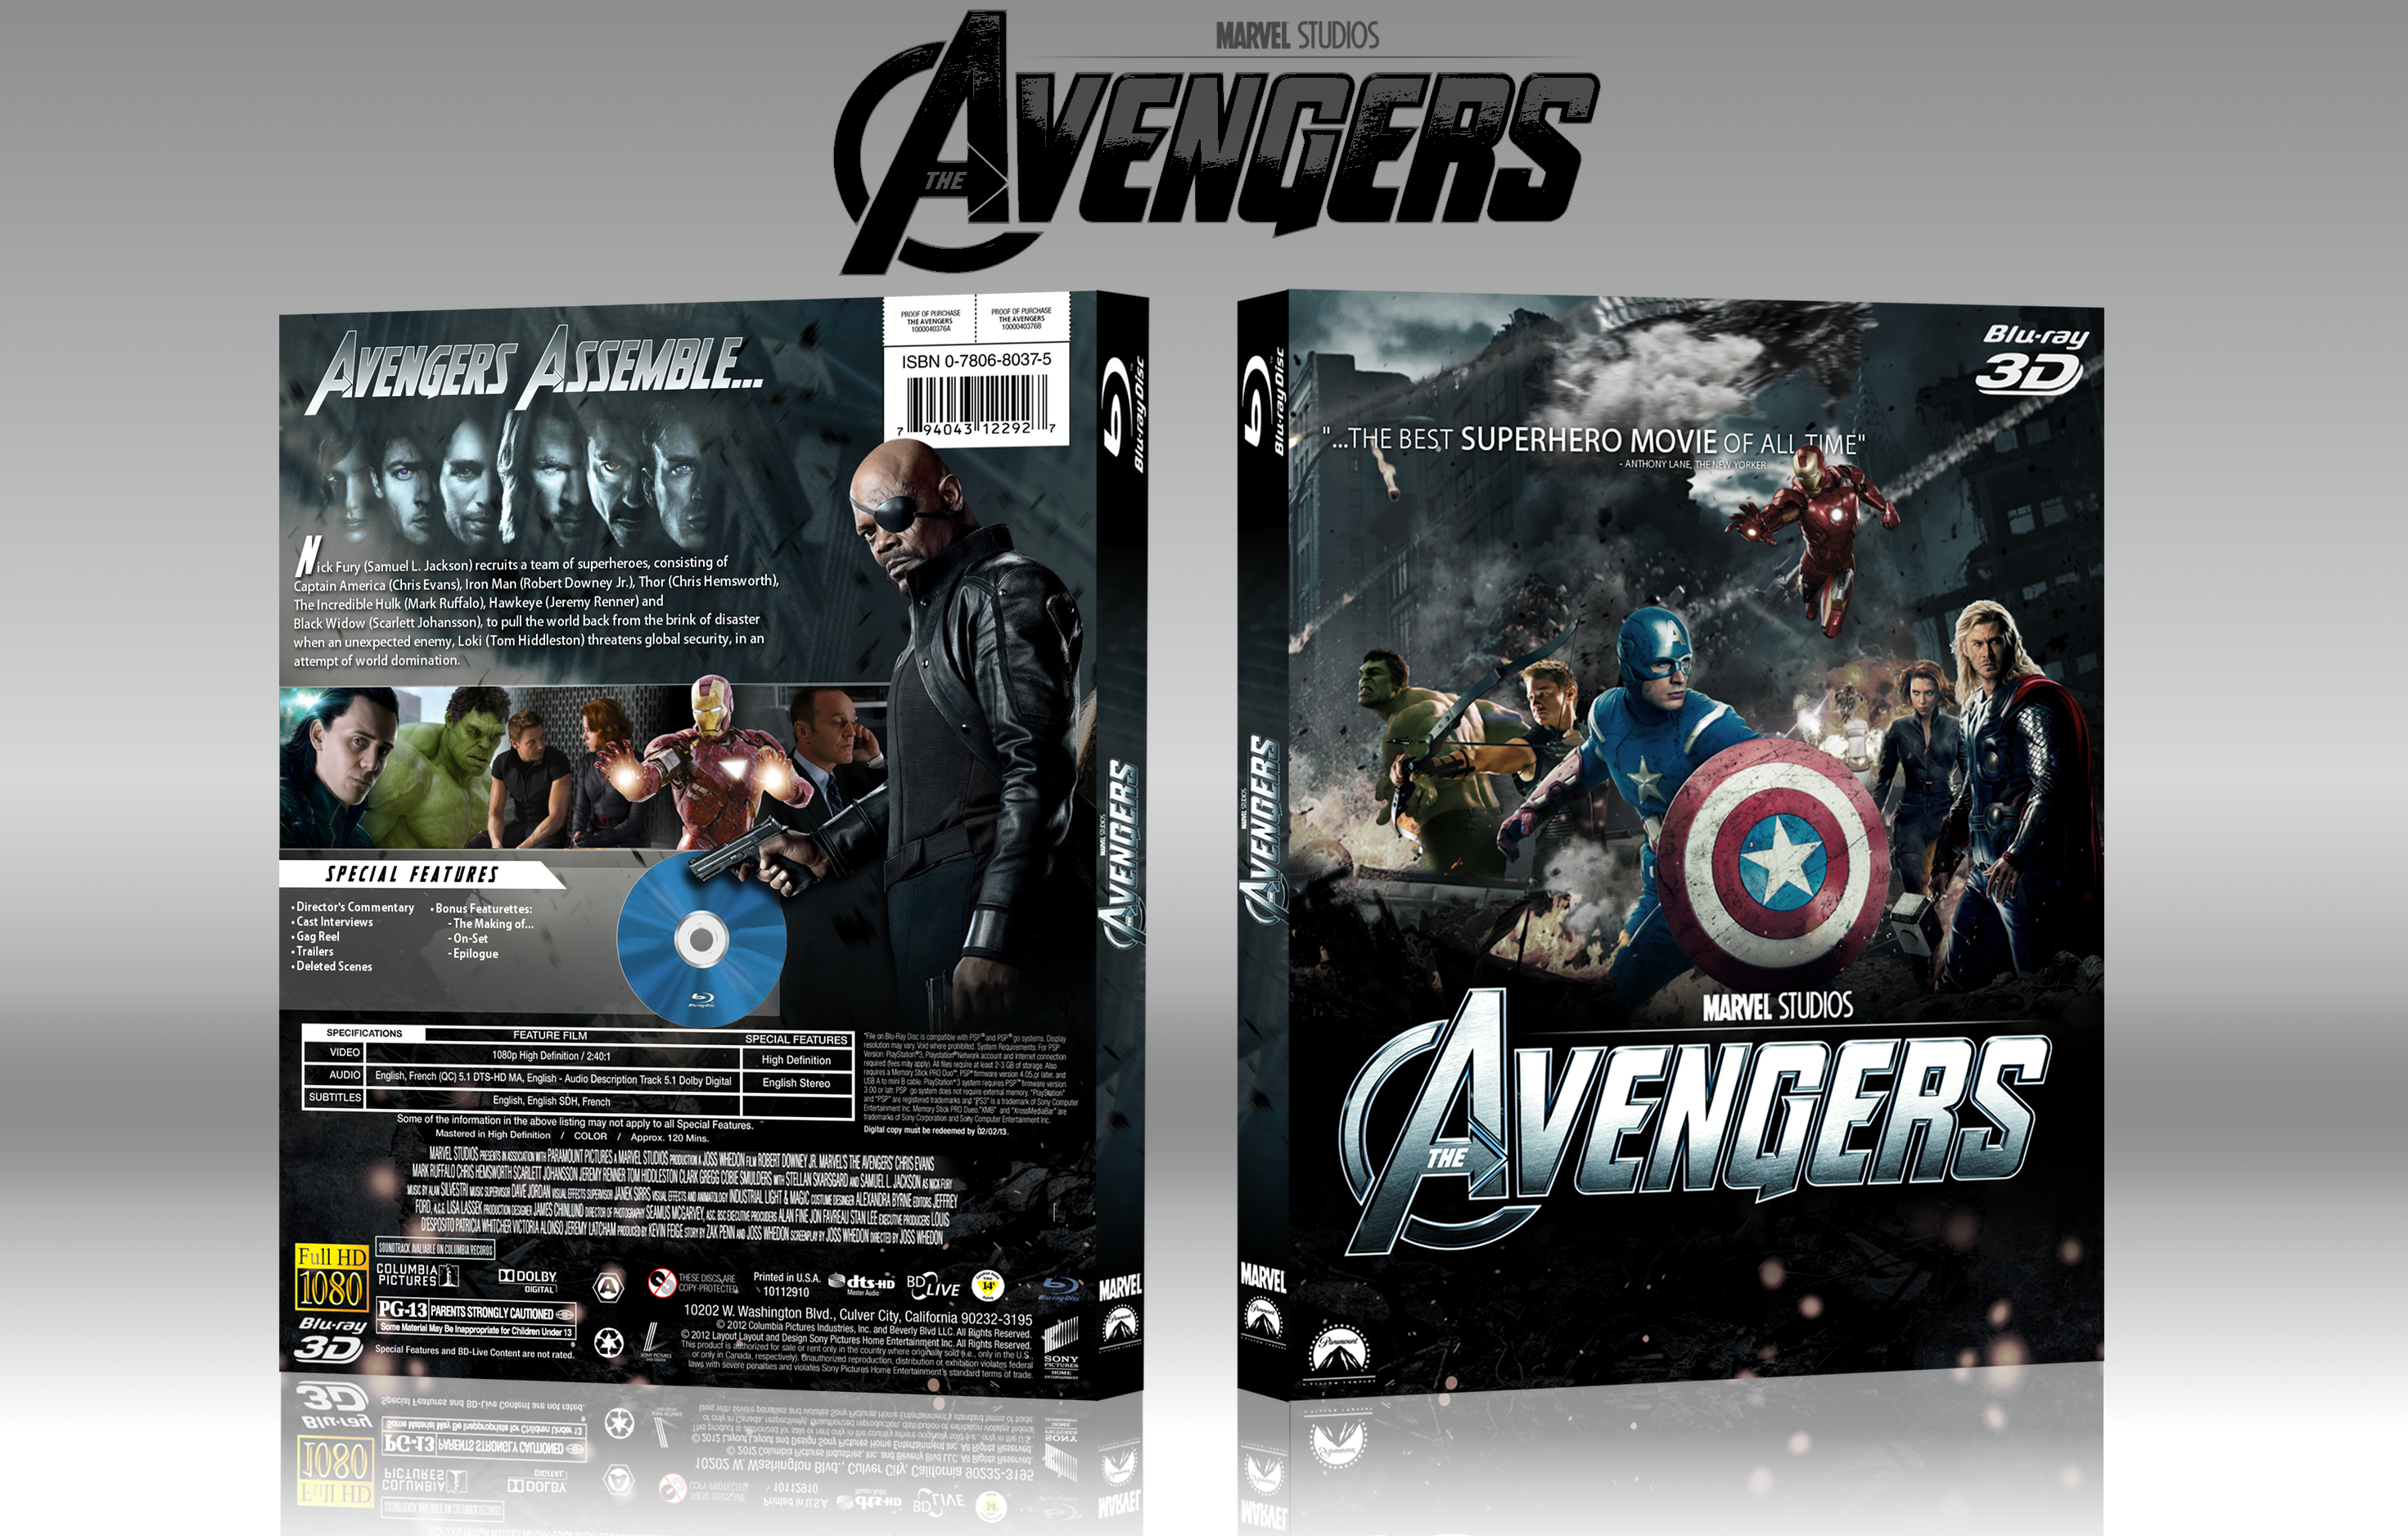 The Avengers box cover